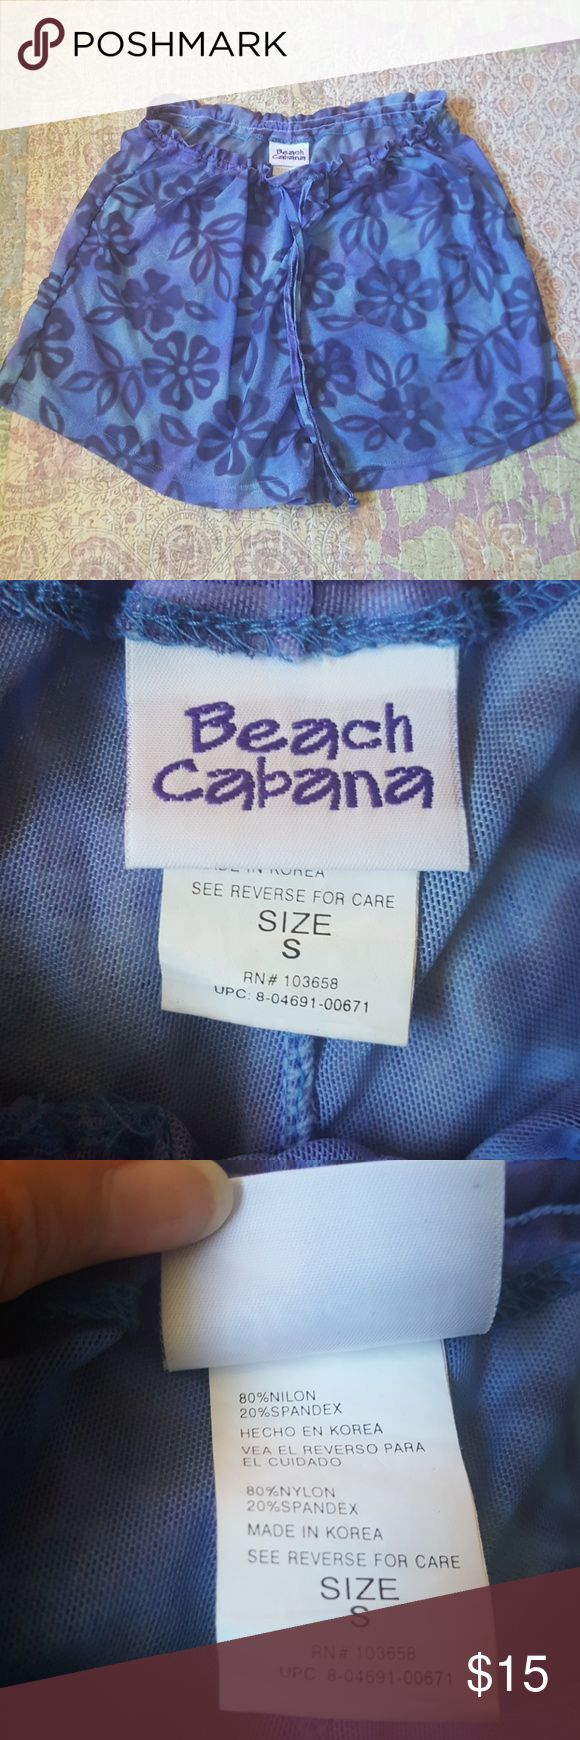 Cover-up Shorts Sheer for pool or beachwear. Drawstring closure. Could fit a medium, marked small!  Periwinkle blue with dark navy blue flowers. Great condition Modeling available upon request✌ Feel free to make an offer 💚 Beach Cabana Shorts